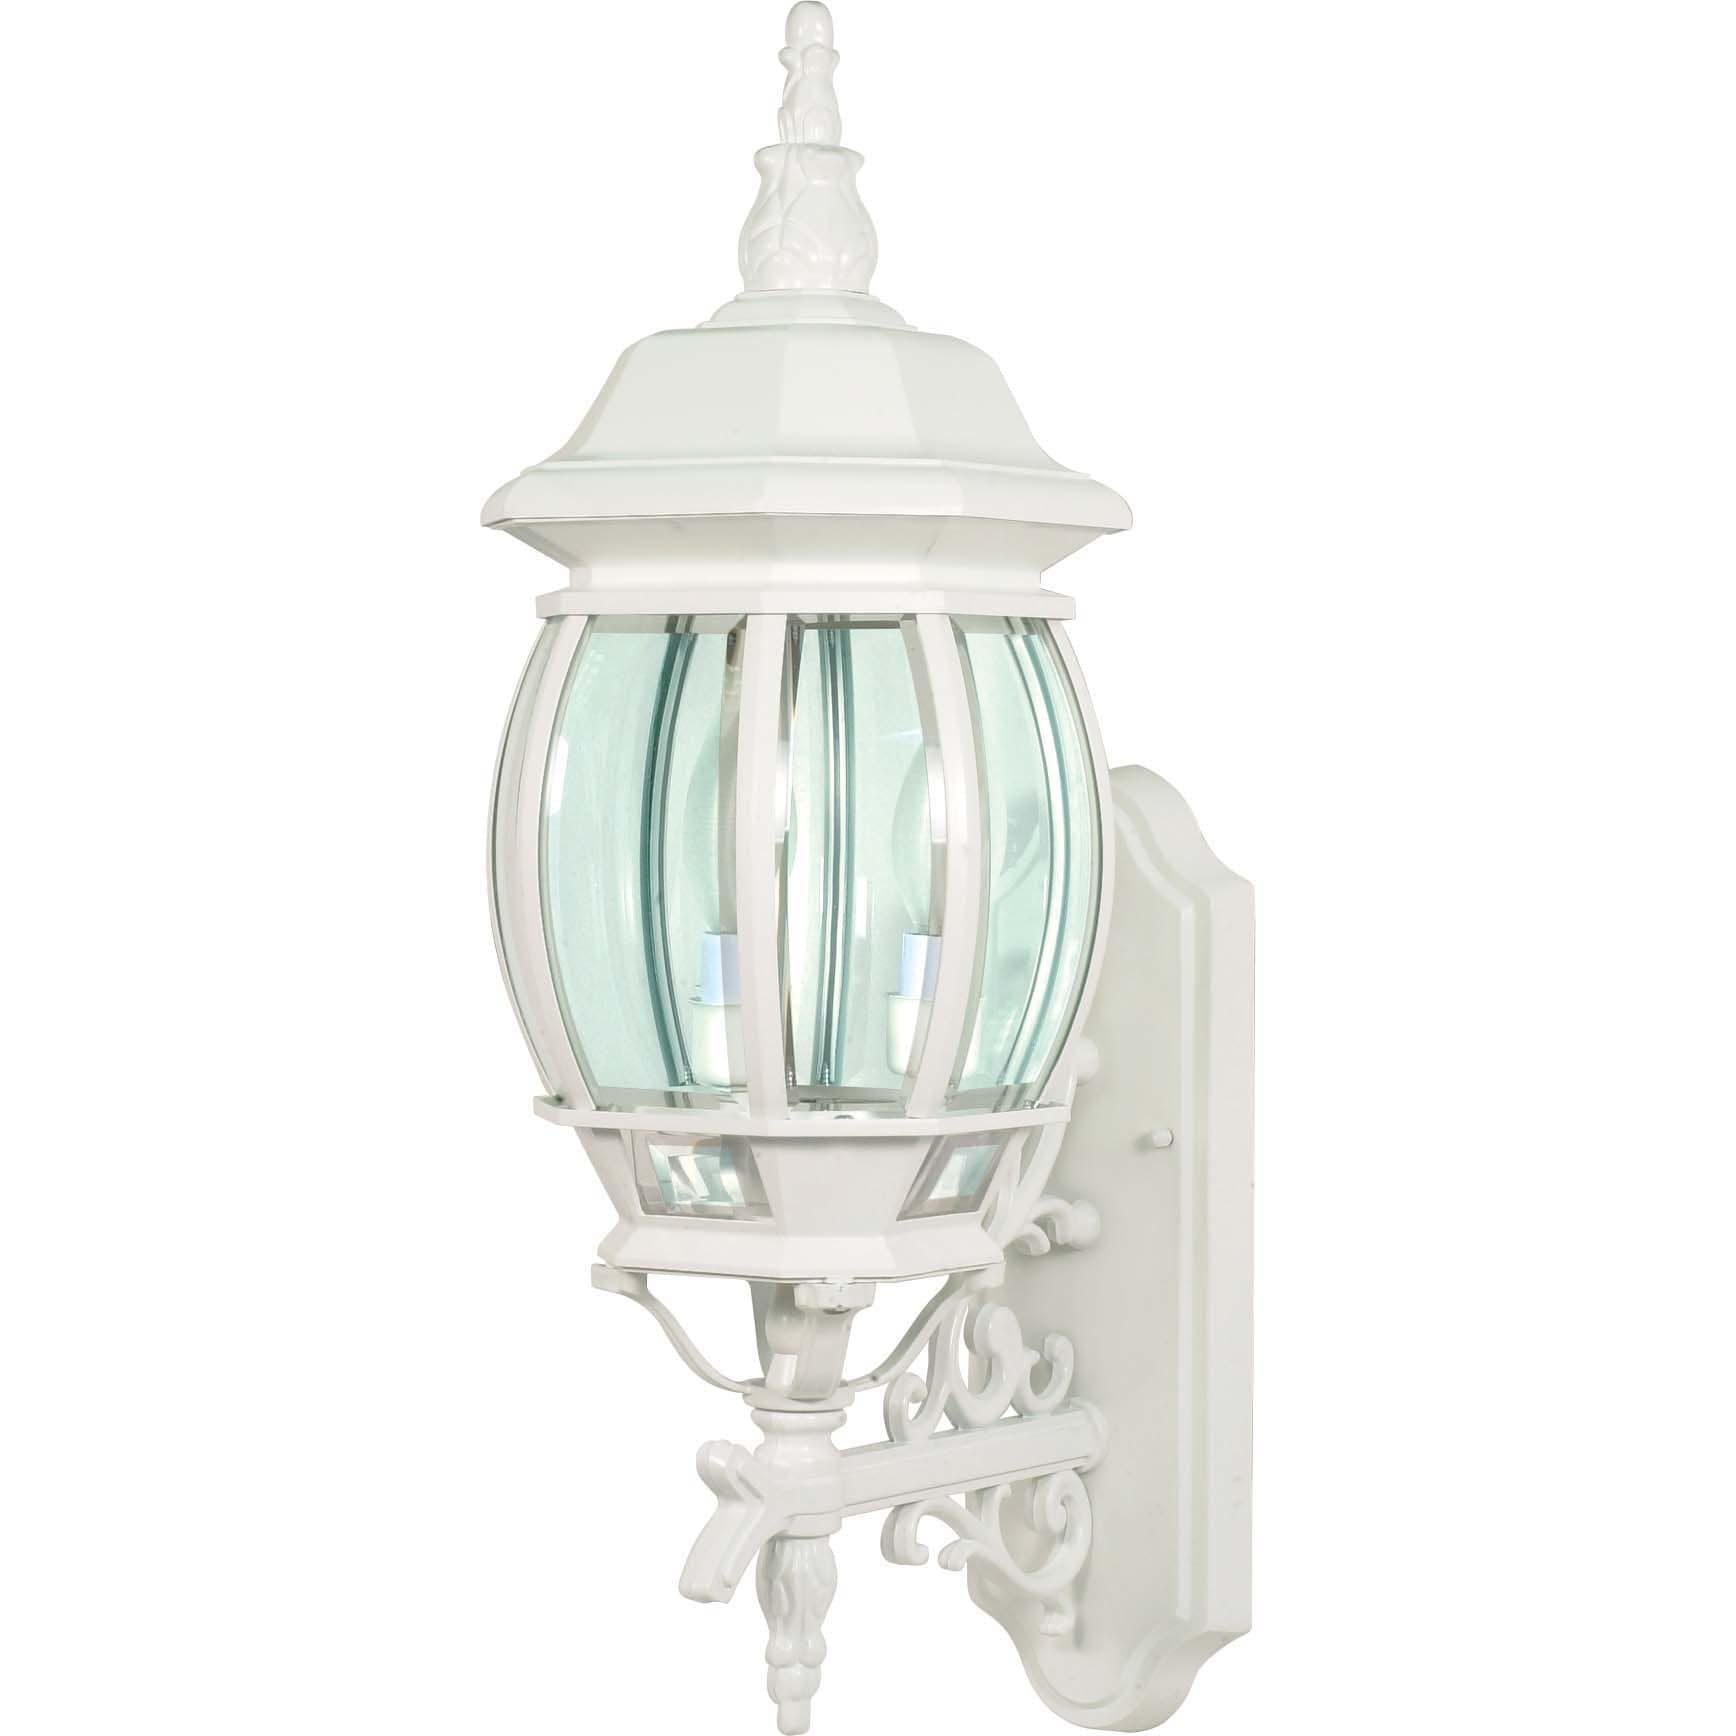 Central Park 3 Light White With Clear Beveled Panels Wall Lantern